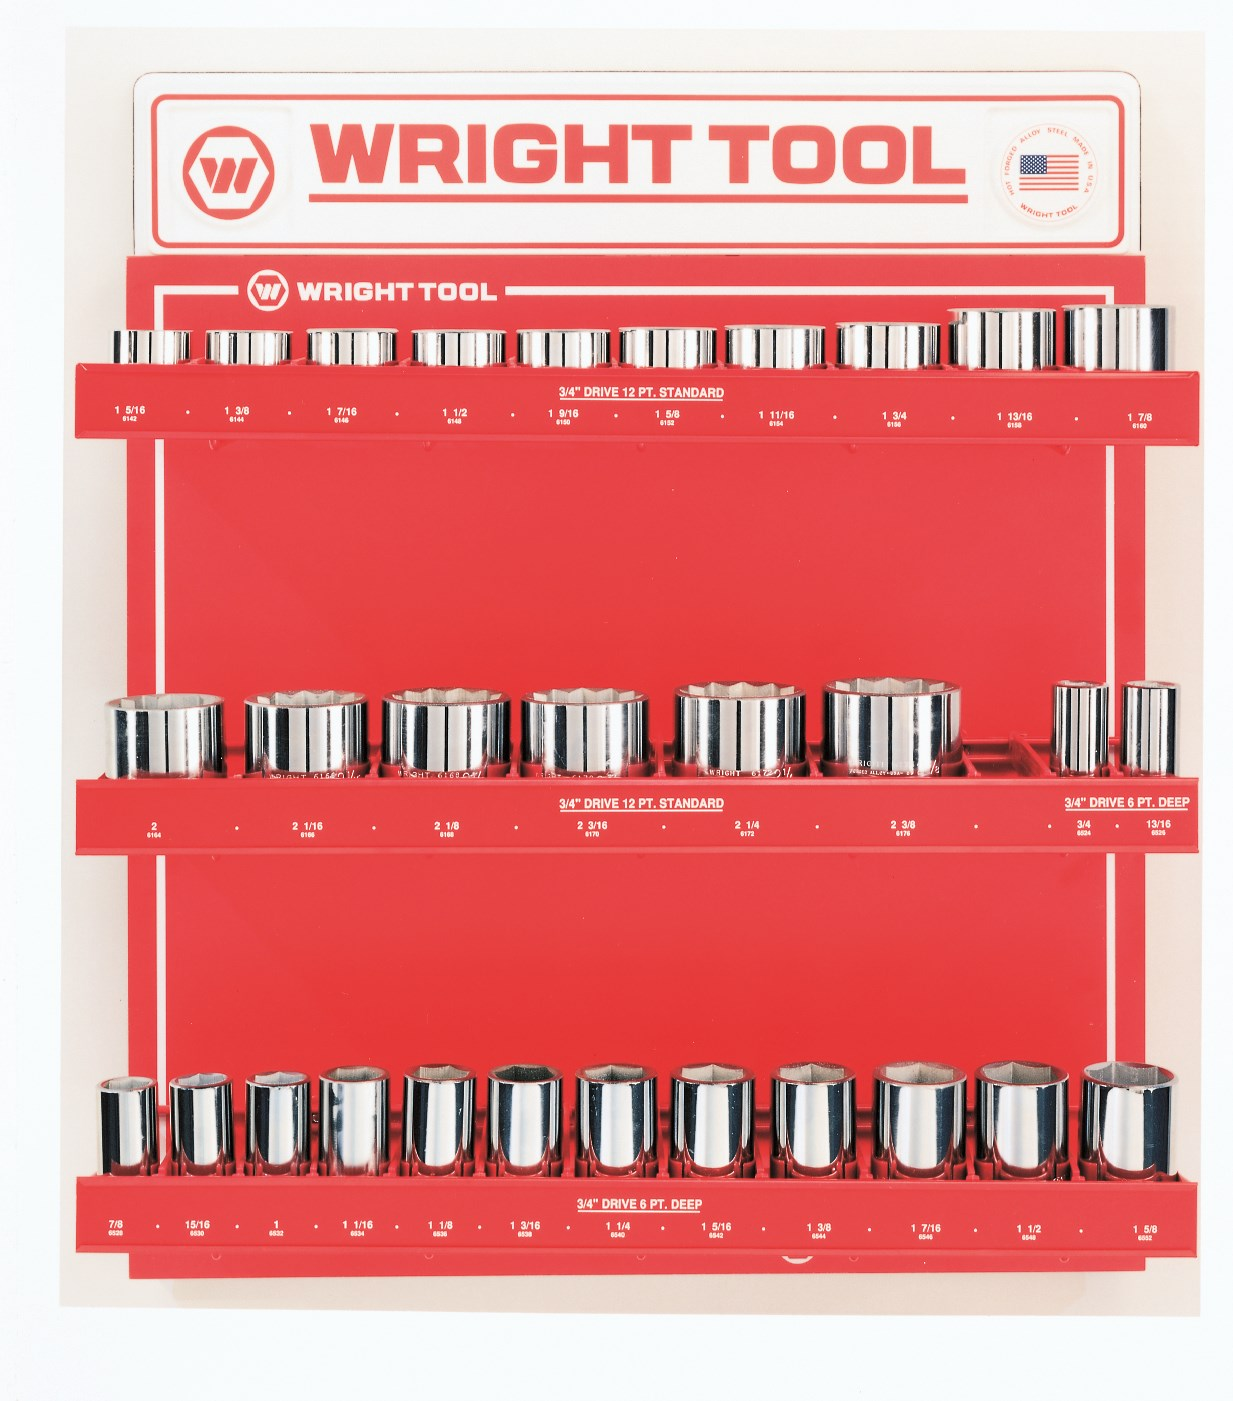 Wright Tool D950 30 Piece 3/4-inch Drive 12-Point Standard and Deep Sockets